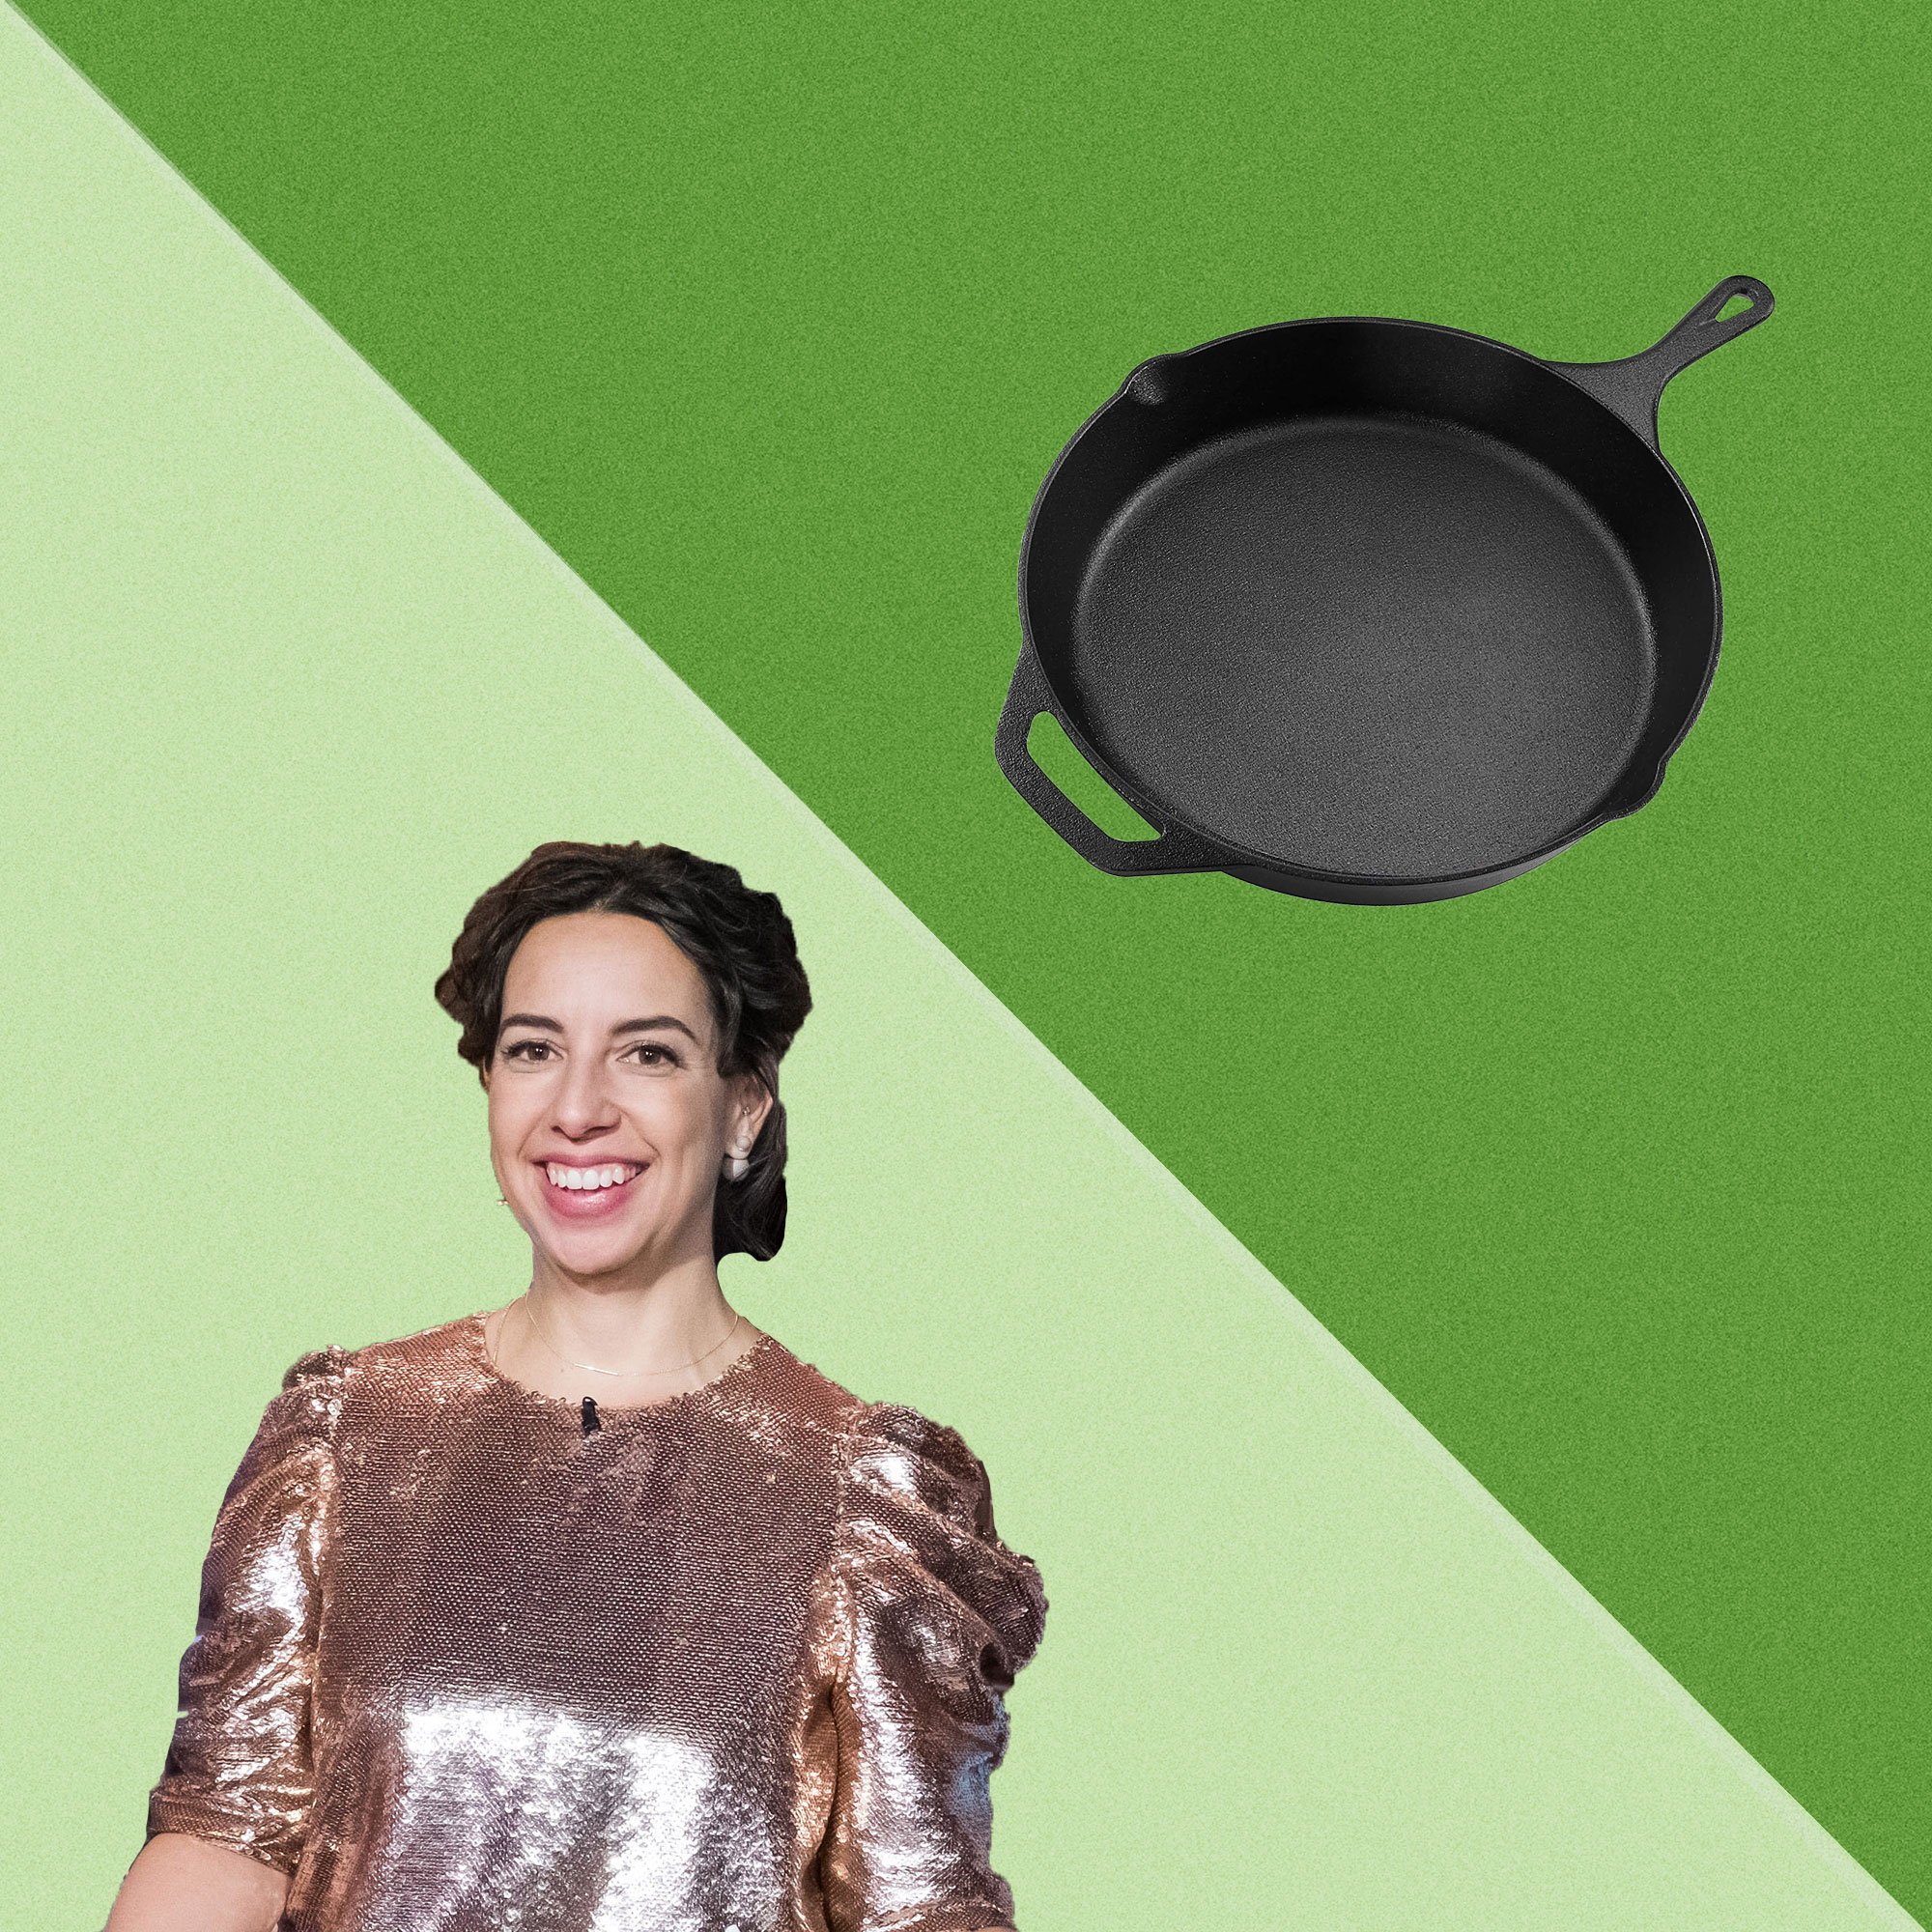 Carla Lalli Music and a cast iron skillet